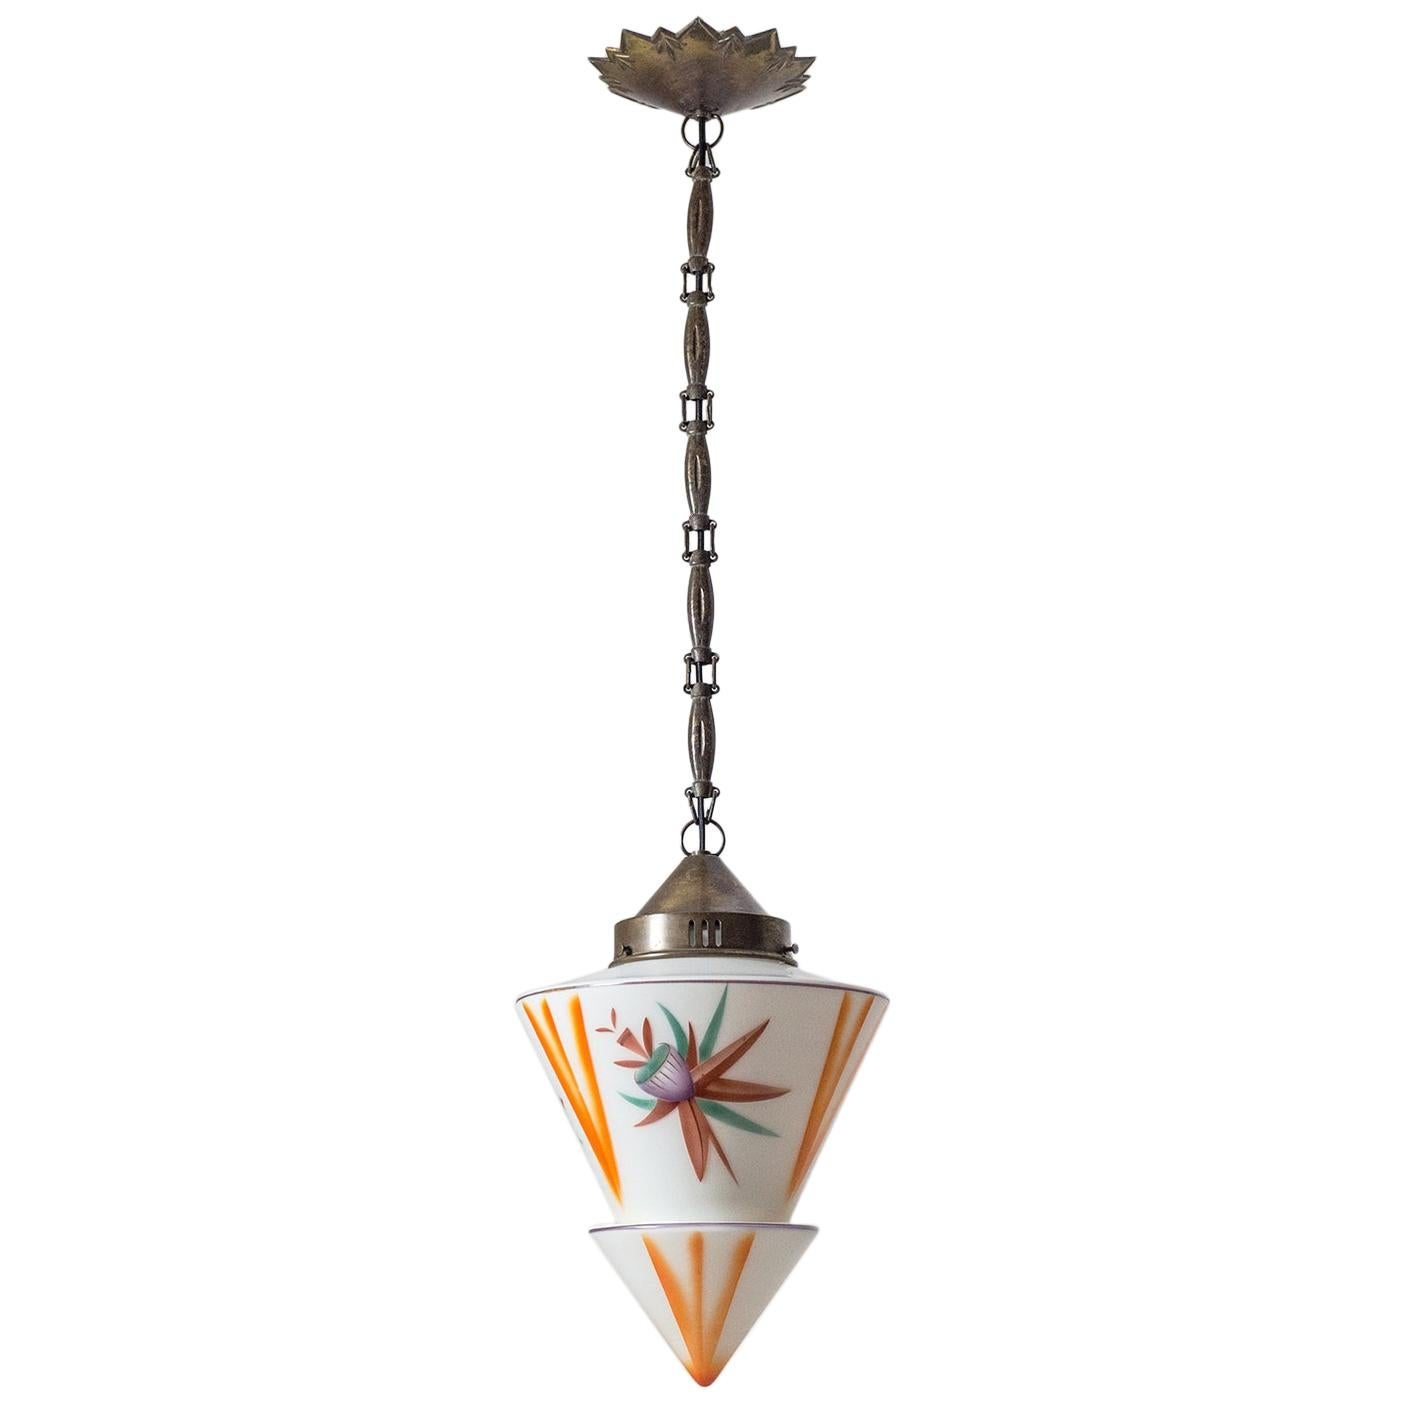 1920s Art Deco Pendant, Enameled Glass and Brass